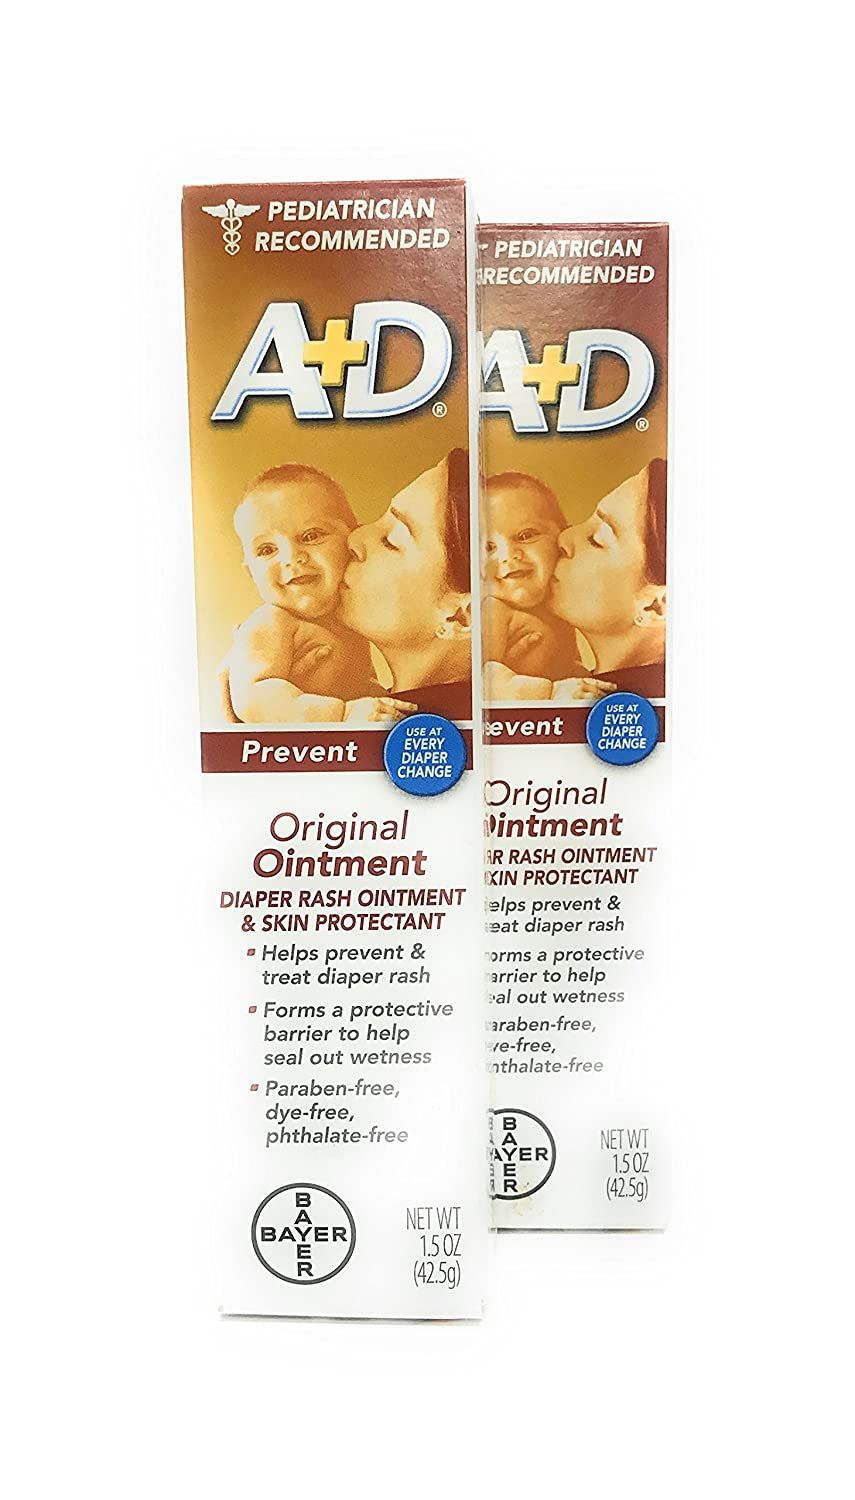 A+D Original Ointment - 1.5 oz, Pack of 2 BAYER CONSUMER